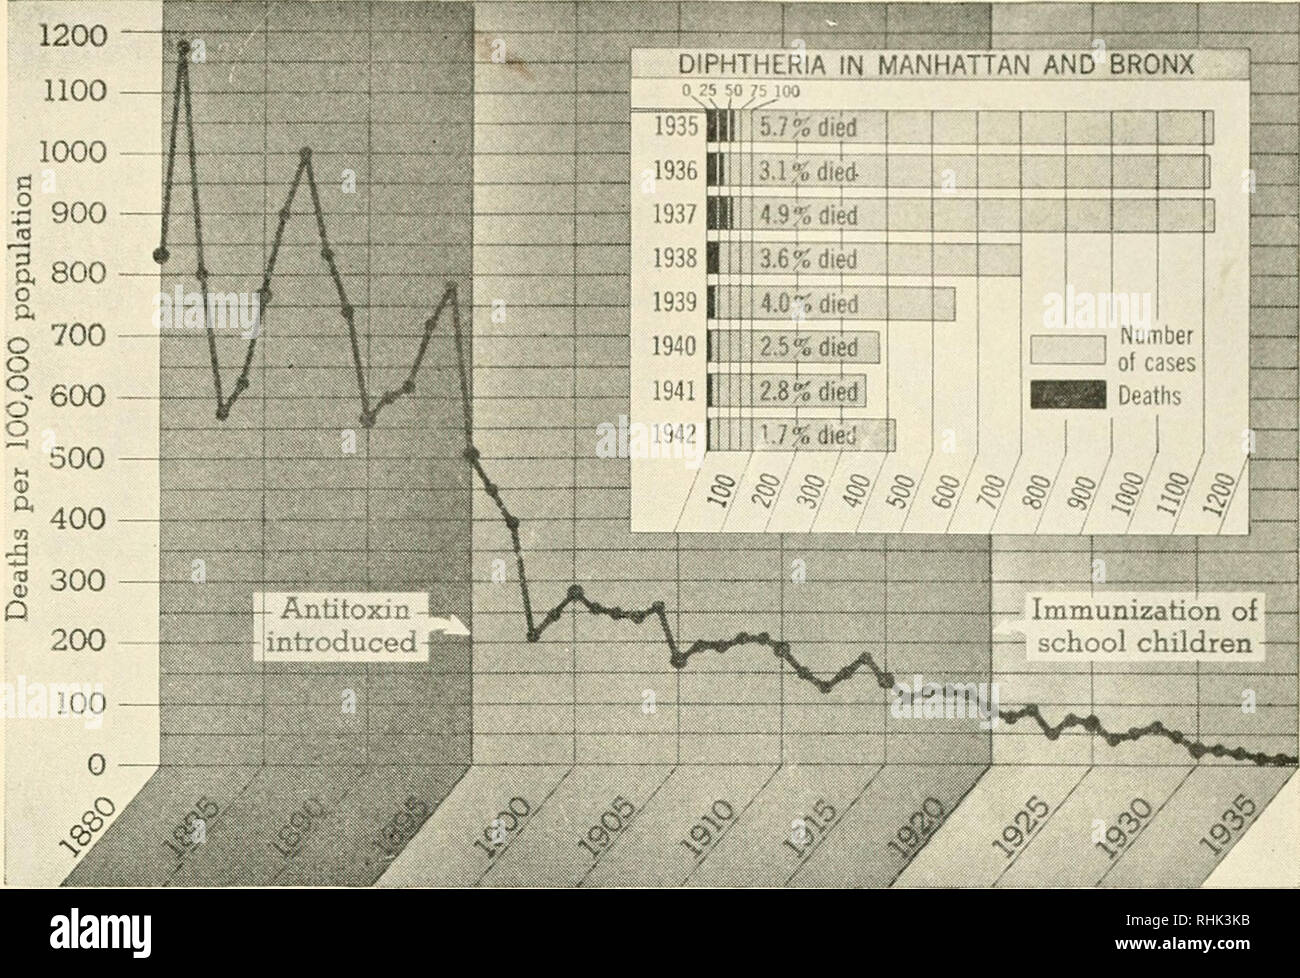 . Biology and man. Biology; Human beings. #^' #^ #' DECLINE OF DIPHTHERIA AS A CAUSE OF DEATH (1880-1942) The long zigzag line shows the fluctuation in deaths from diphtheria per 100,000 population in New York (Manhattan and Bronx, for which the most complete records are available). After 1895, when antitoxin came into use, there is a rapid drop, and then a steady decline for twenty-five years. With the introduction of the Schick test for susceptibility and the immunization of children against diphtheria, this disease became an almost negligible cause of death. The record for the last few year - Stock Image